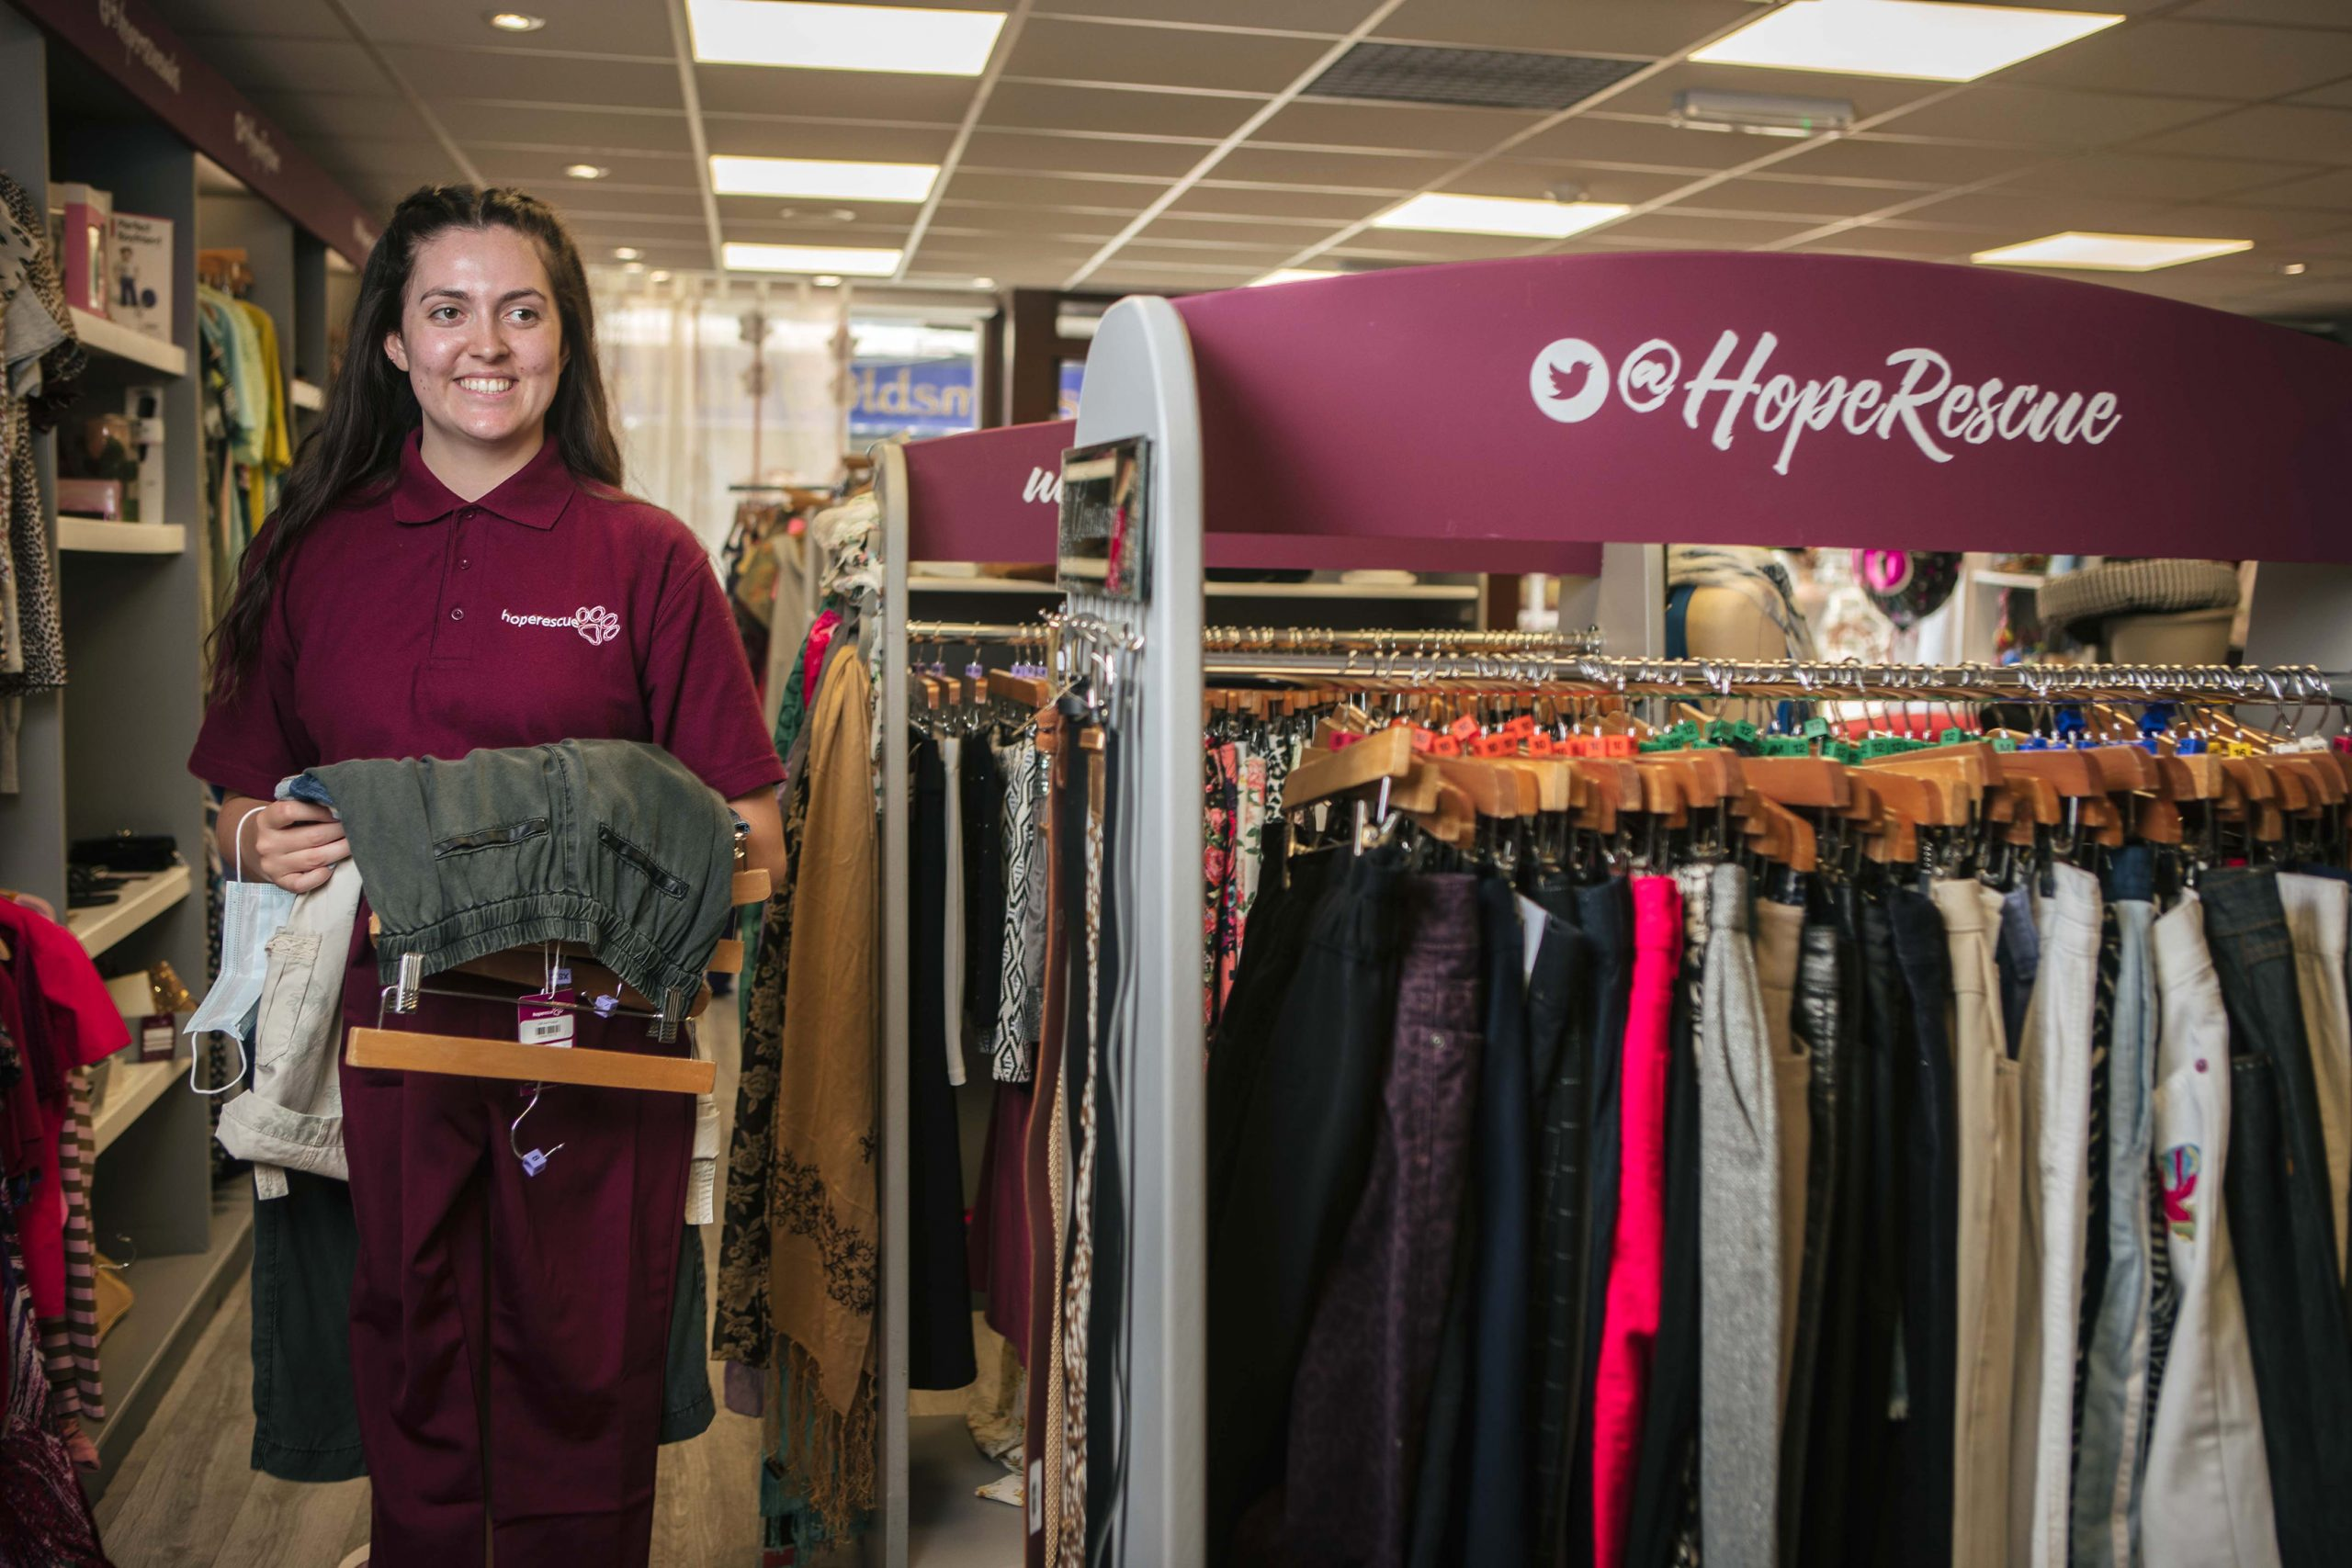 Young woman stands holding clothes in front of clothes rail in shop